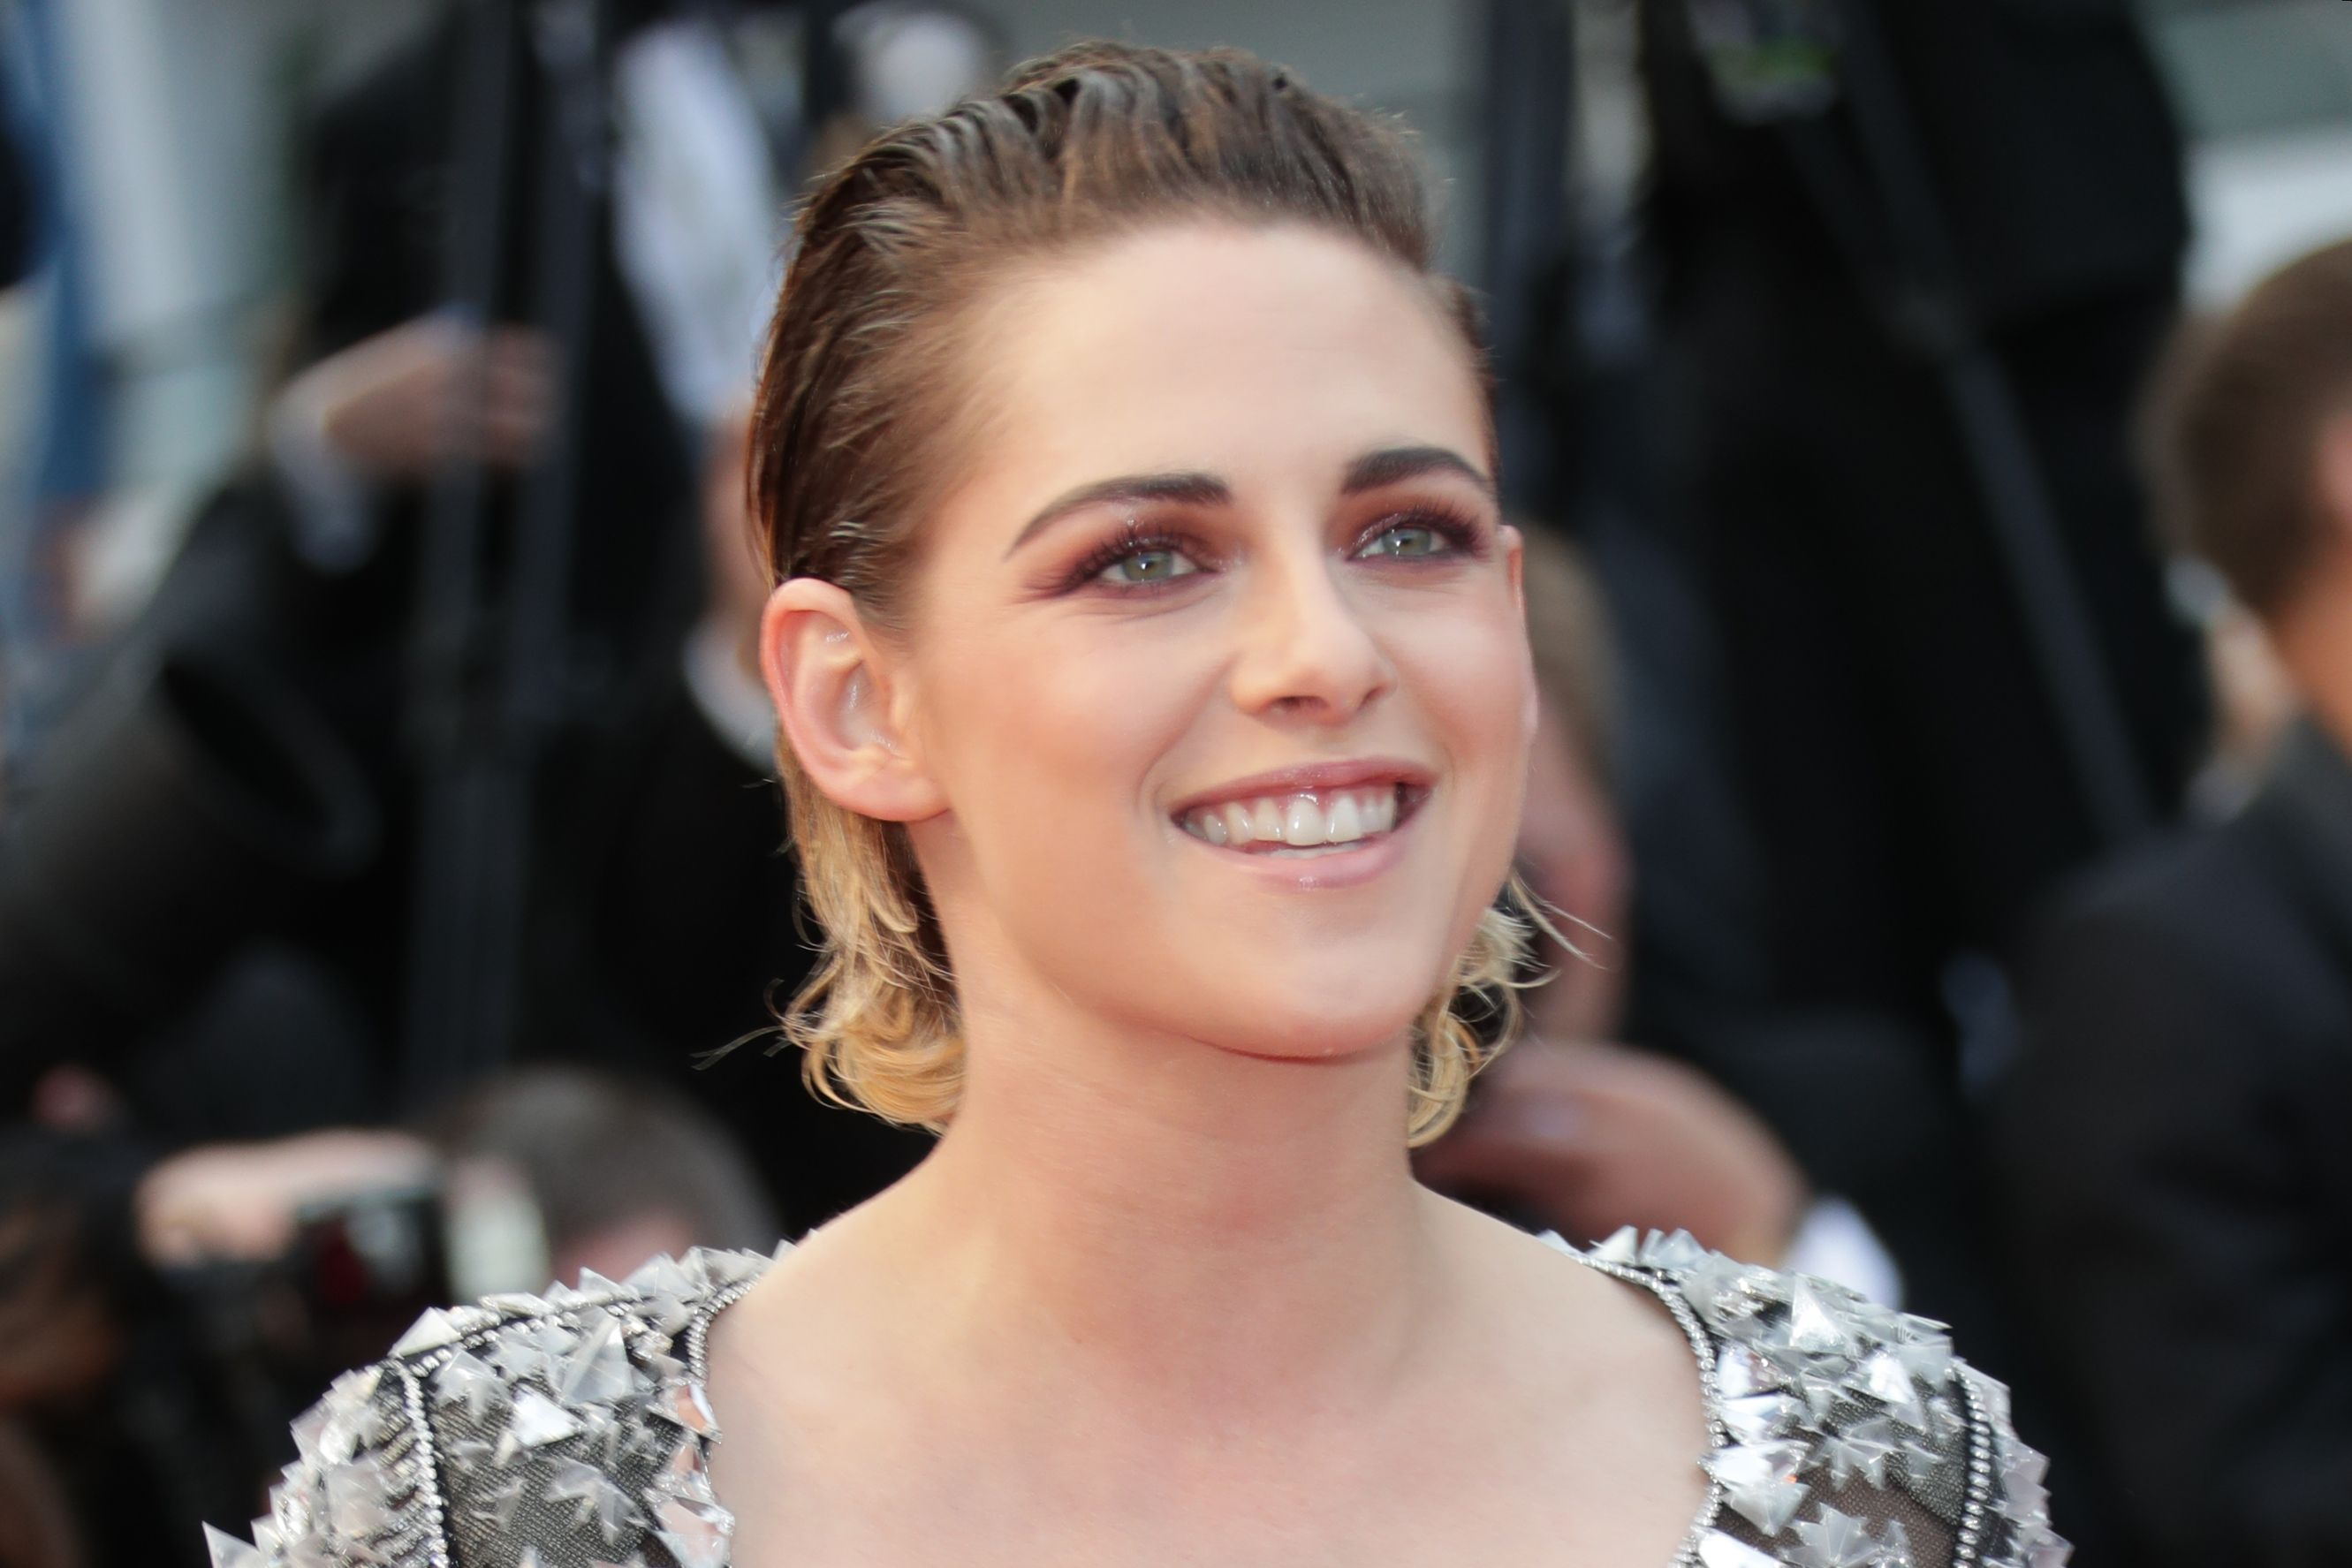 Cannes 2018: Kristen Stewart Walks Barefoot To Protest Against Heels Only Rule